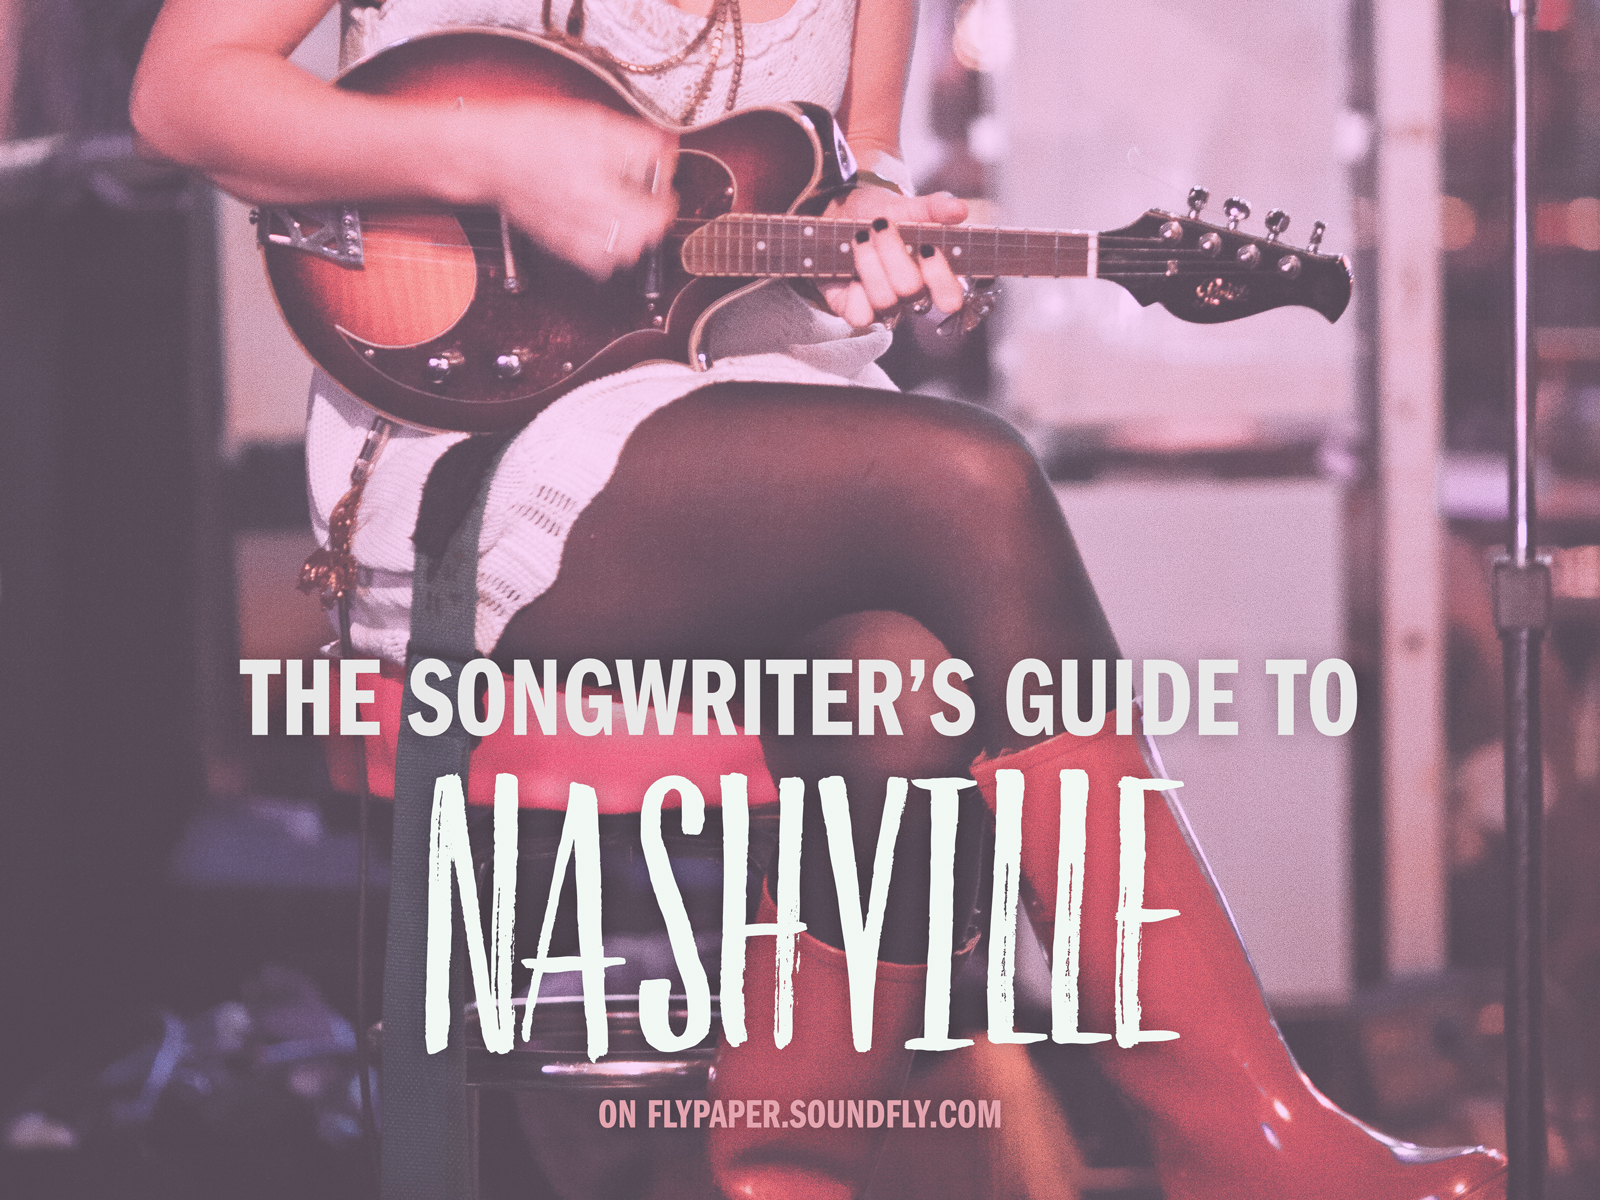 Coursework writer nashville